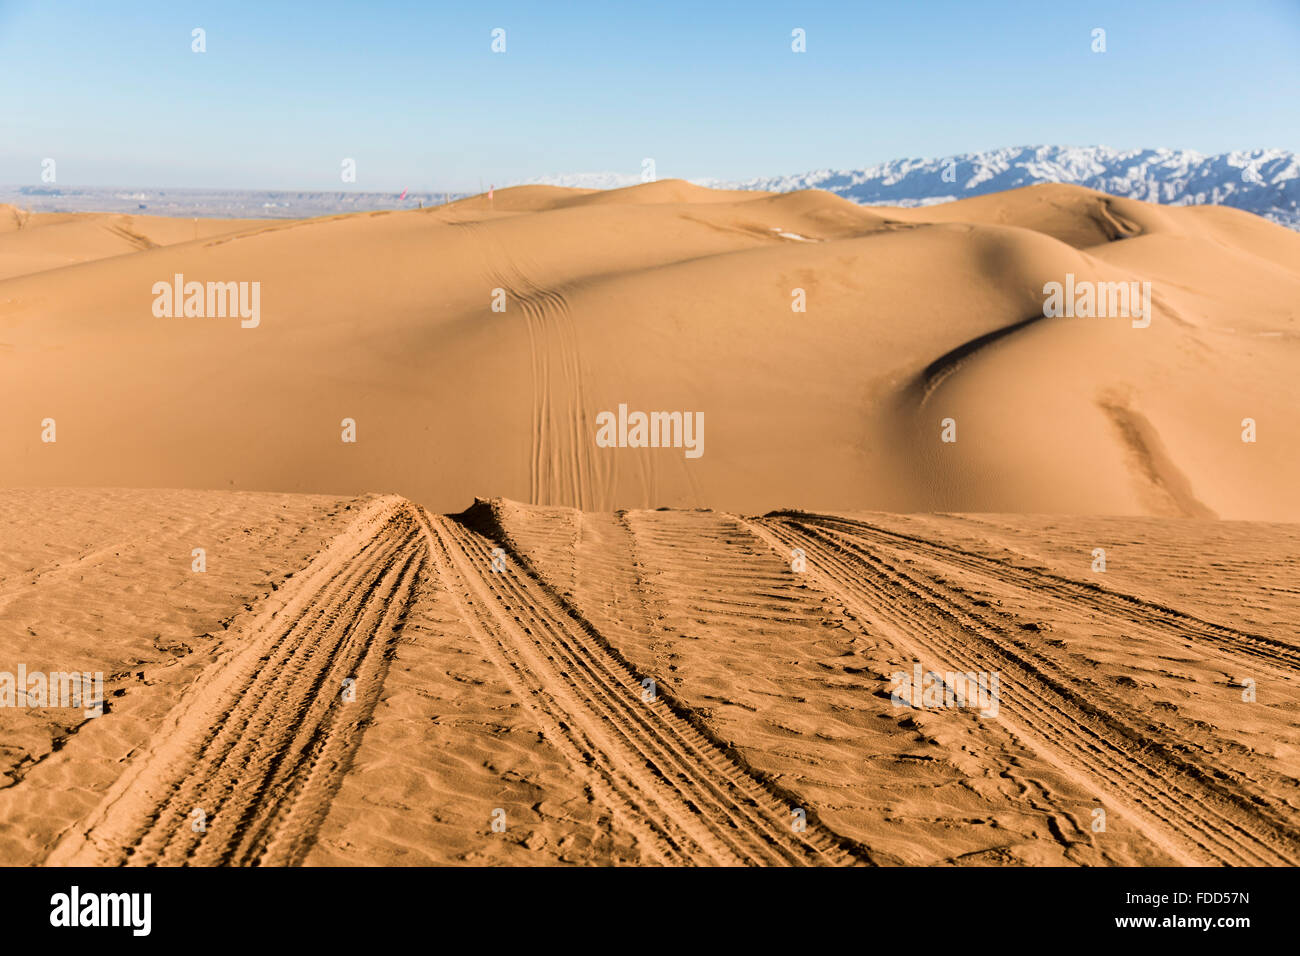 Tire tracks on the sand dunes in Shapotou National Park - Ningxia, China. - Stock Image